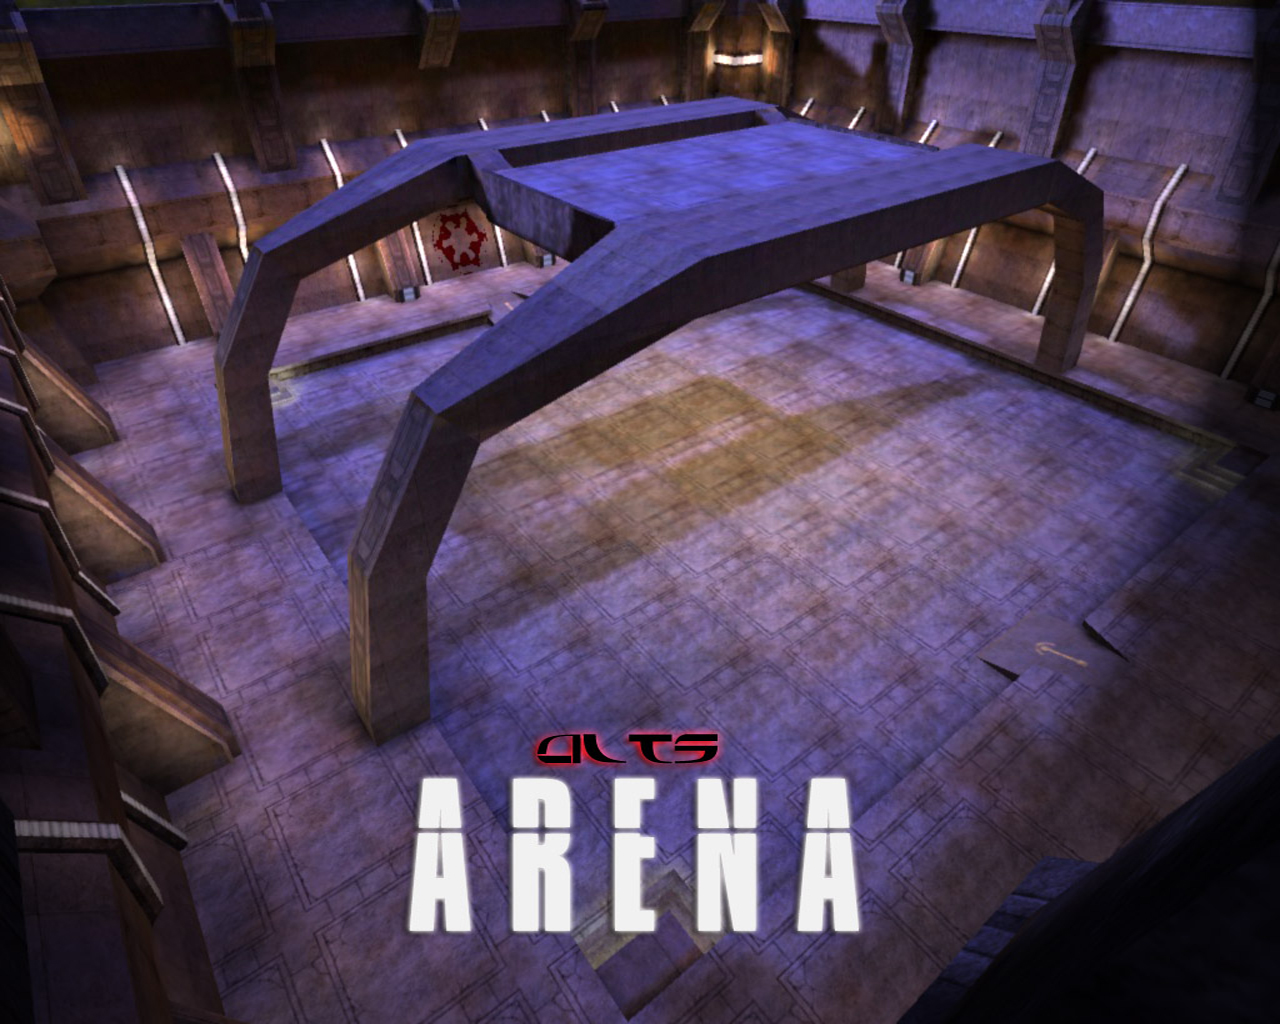 OLTS_arena_0